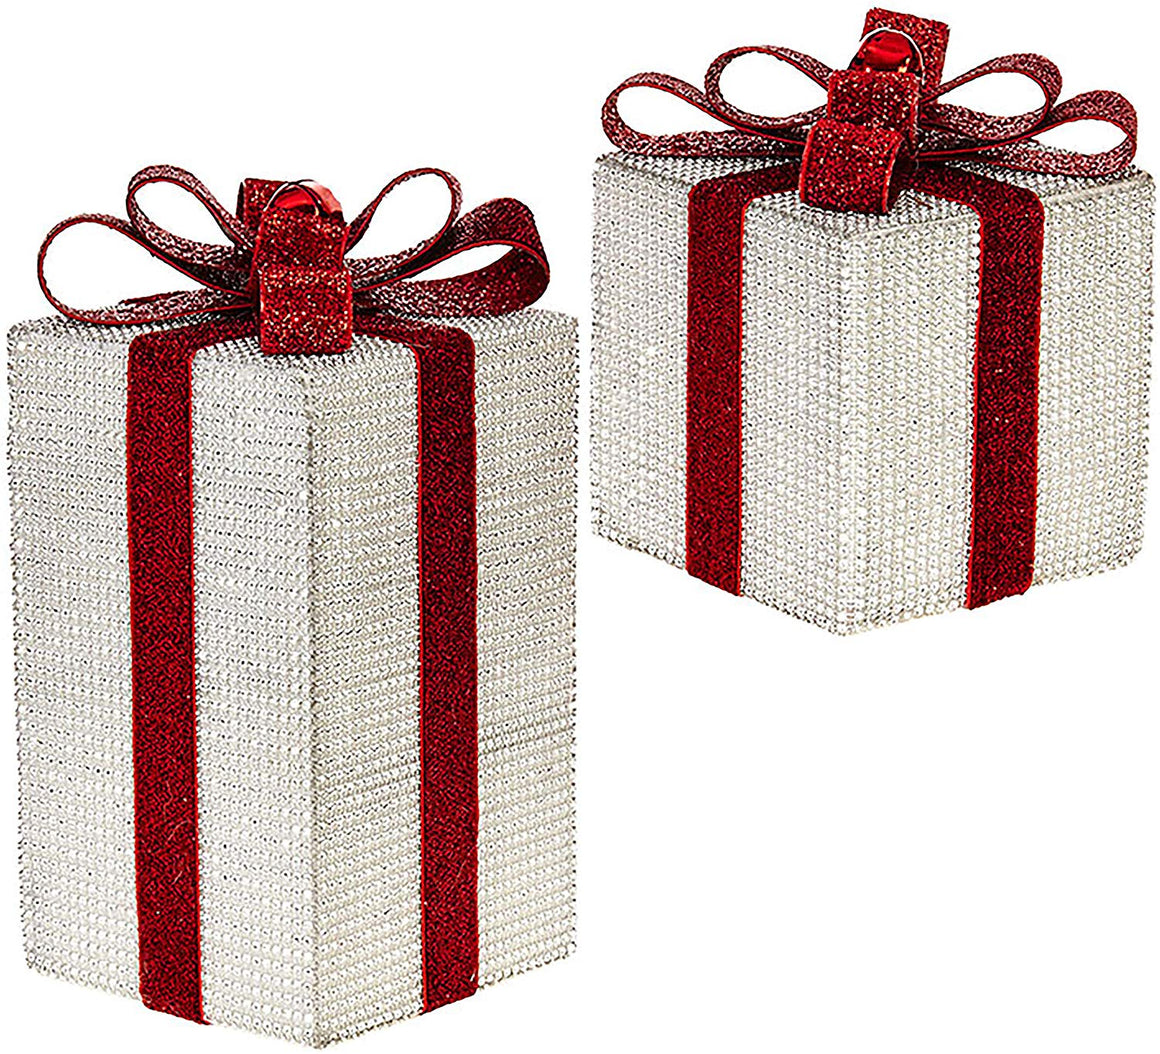 Jeweled Gift Boxes Set of 2 in Silver Rhinestones and Red Bows 10 Inches and 6.5 Inches